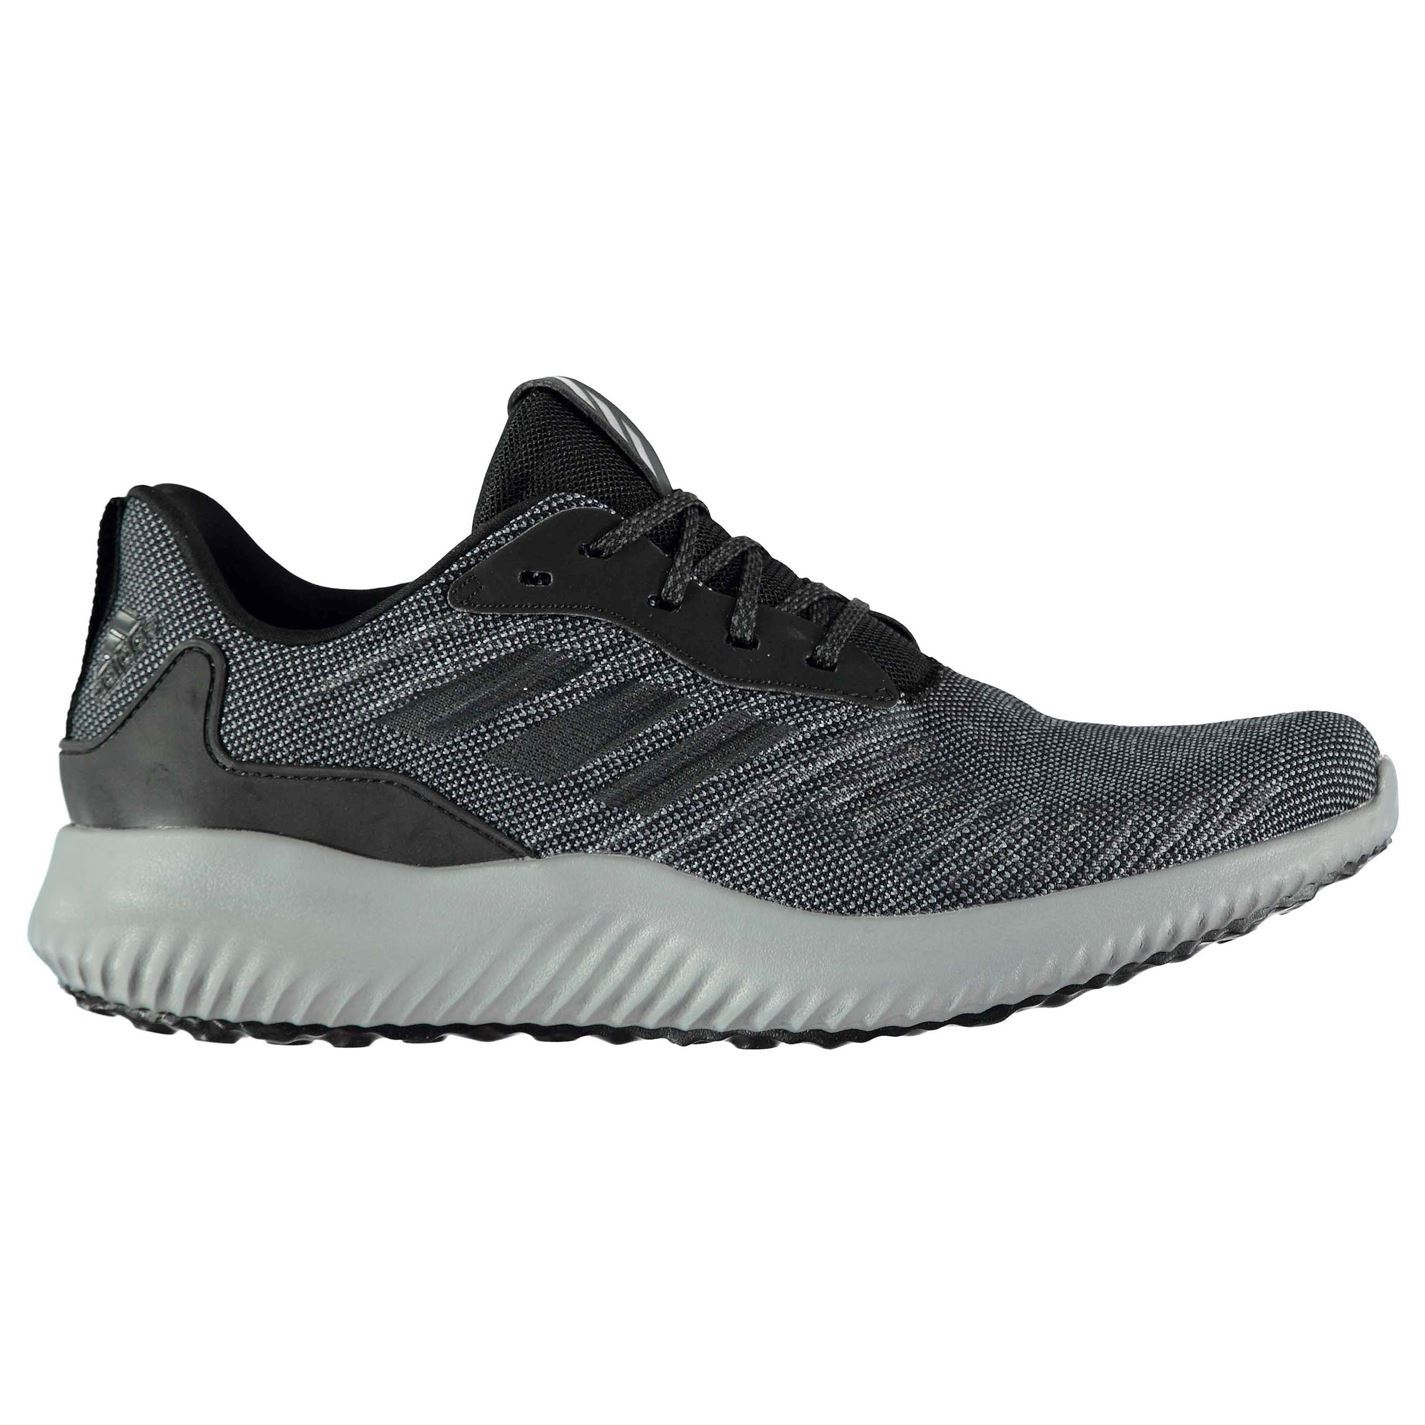 Adidas Bounce Cushioned Running Shoes